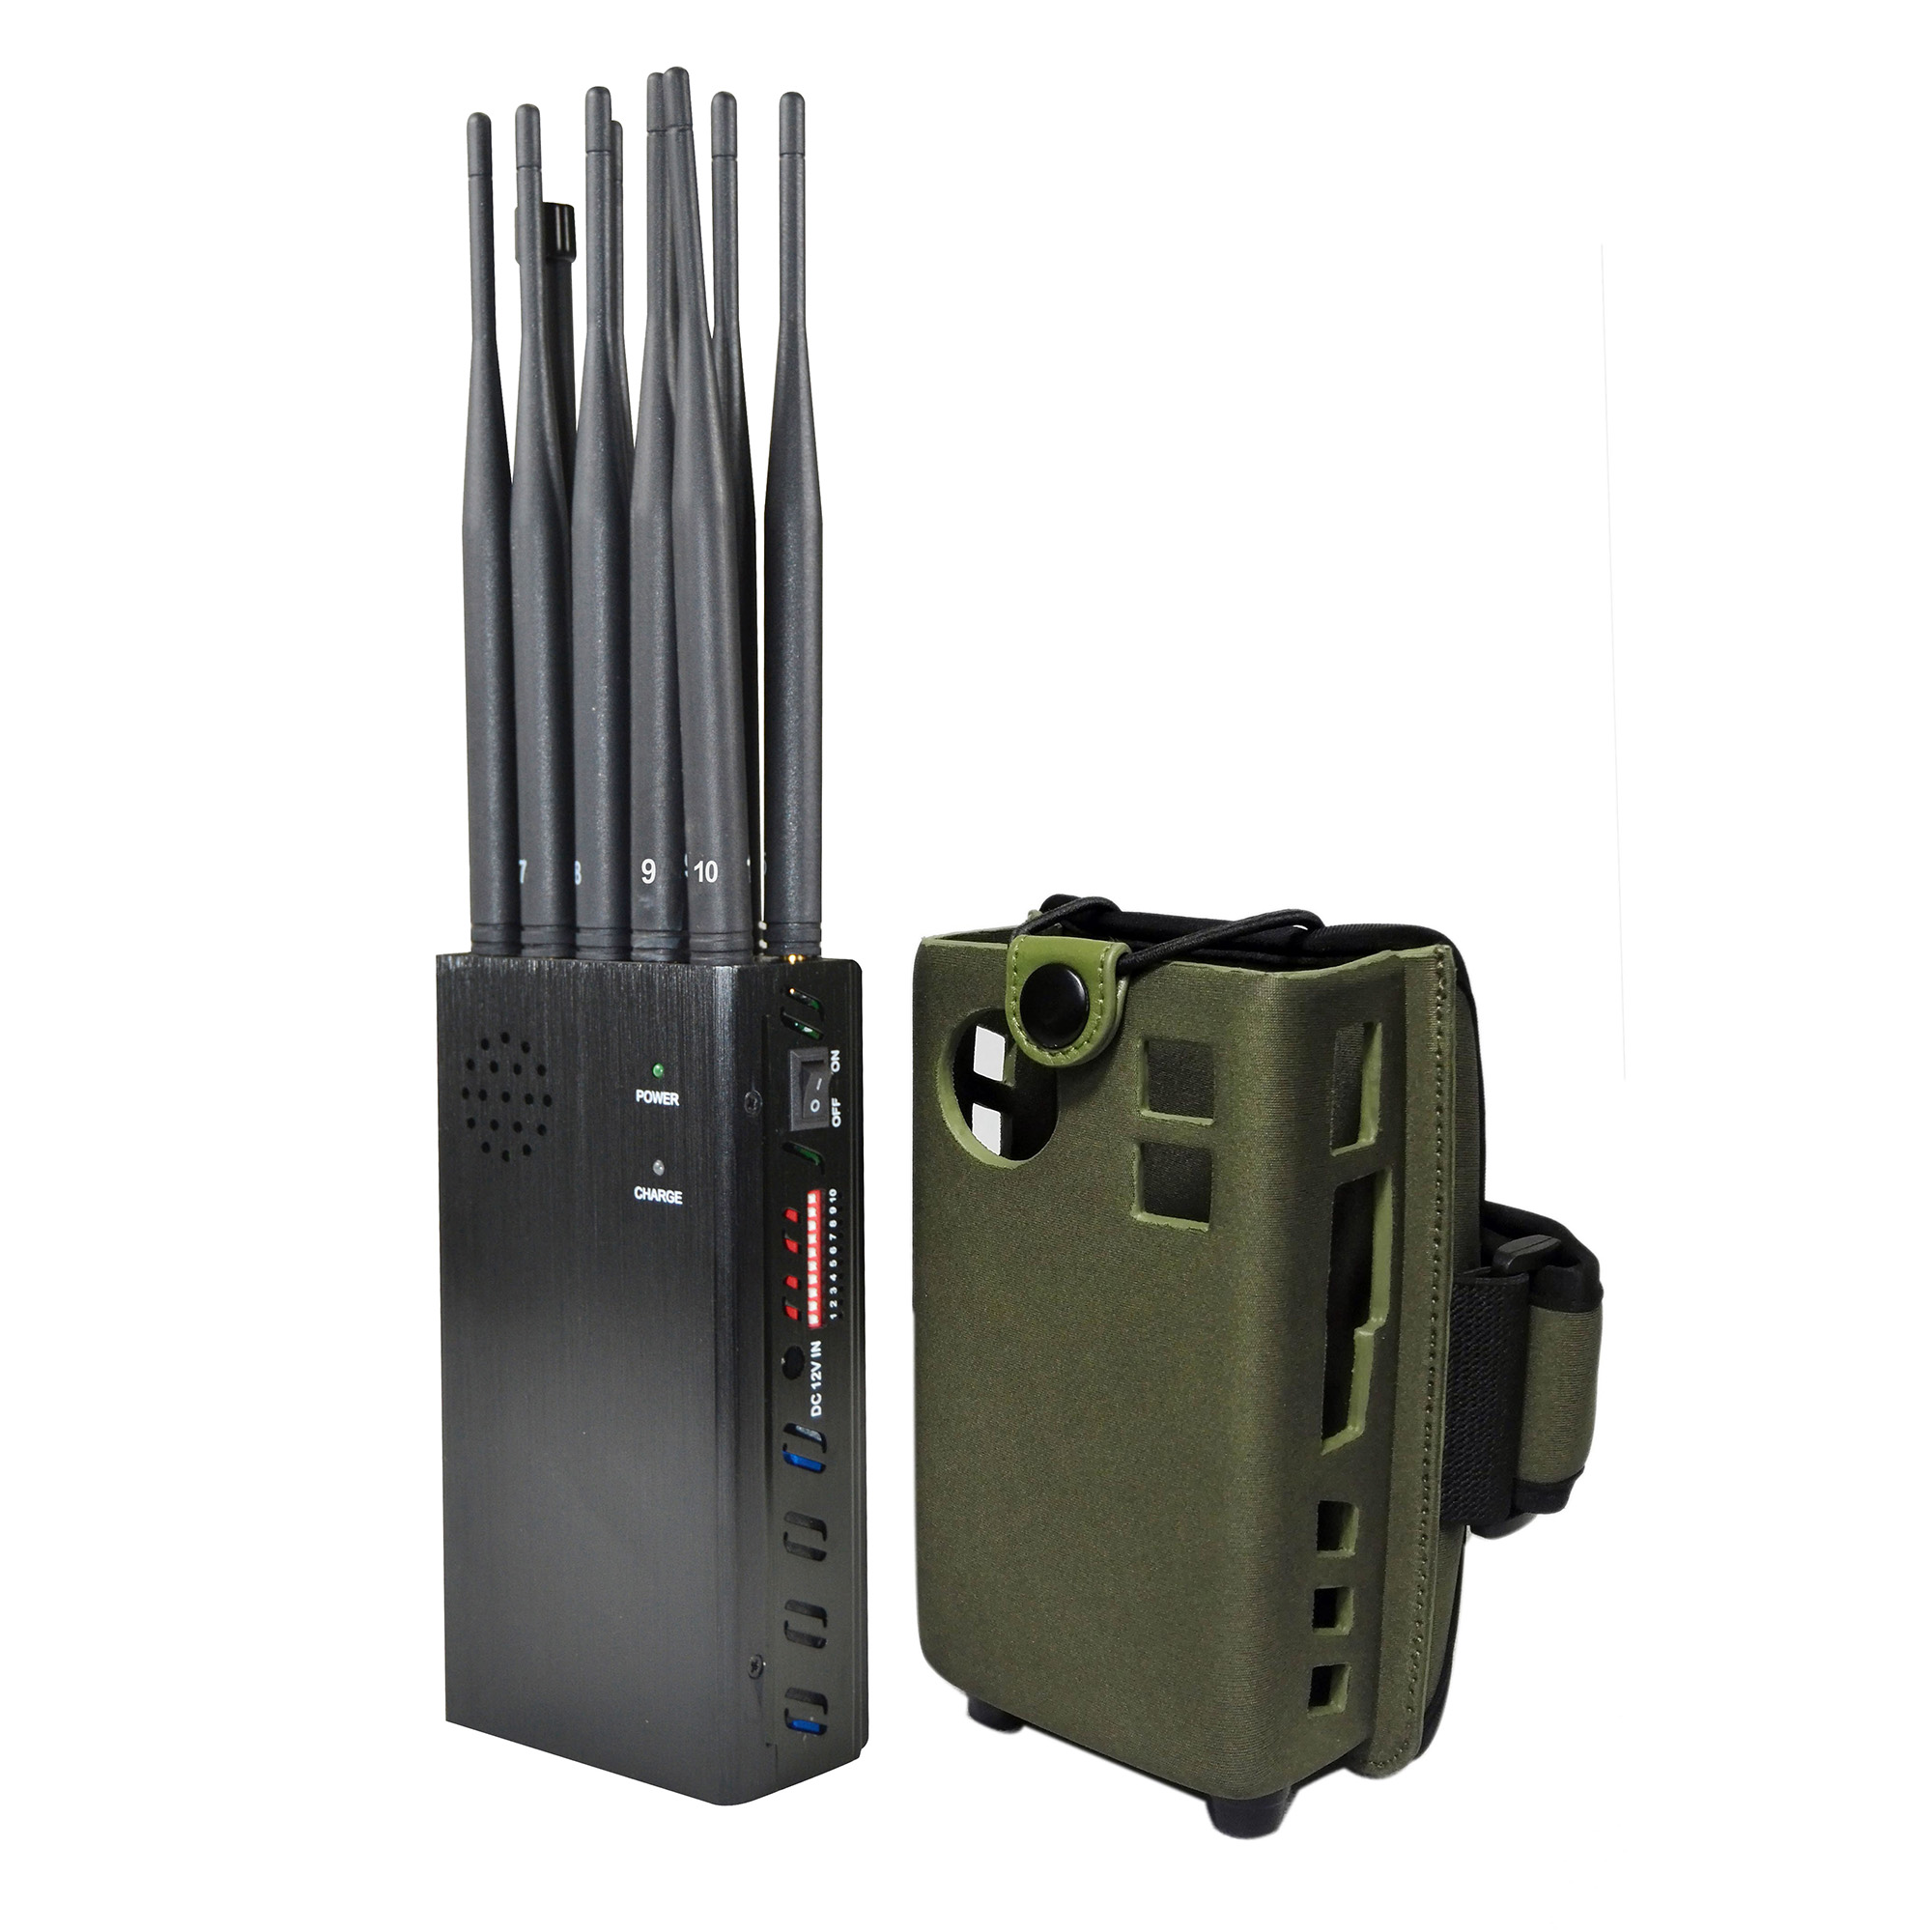 10 Antenna Mobile Phone Signal Jammer